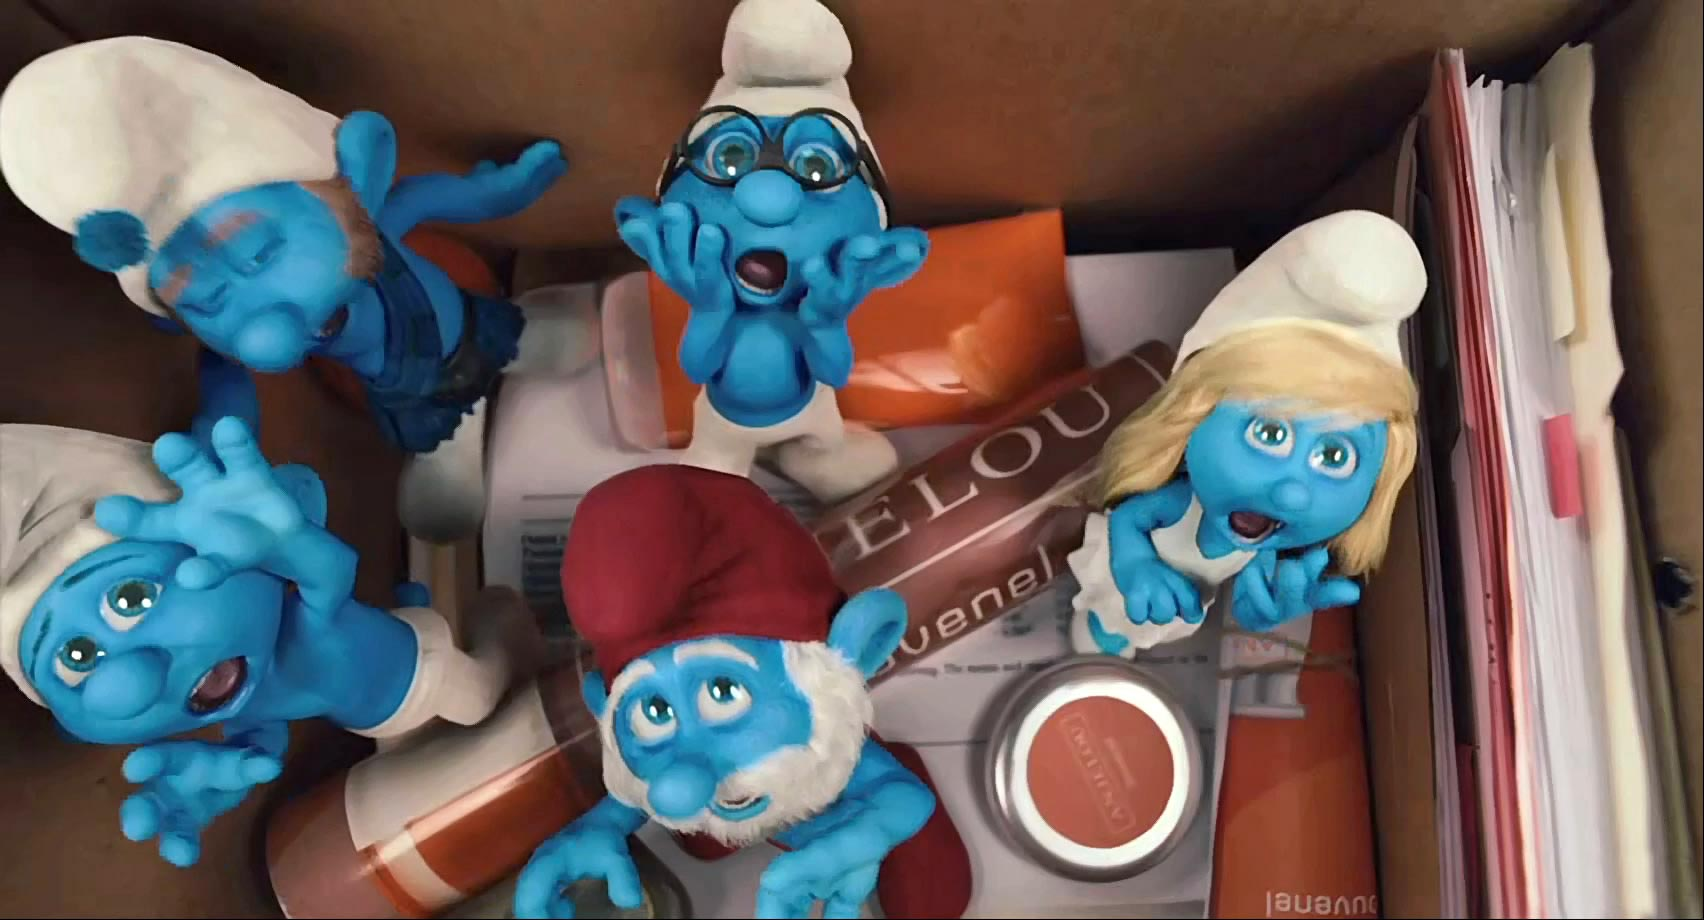 The Smurfs Trailer #2 - FilmoFilia